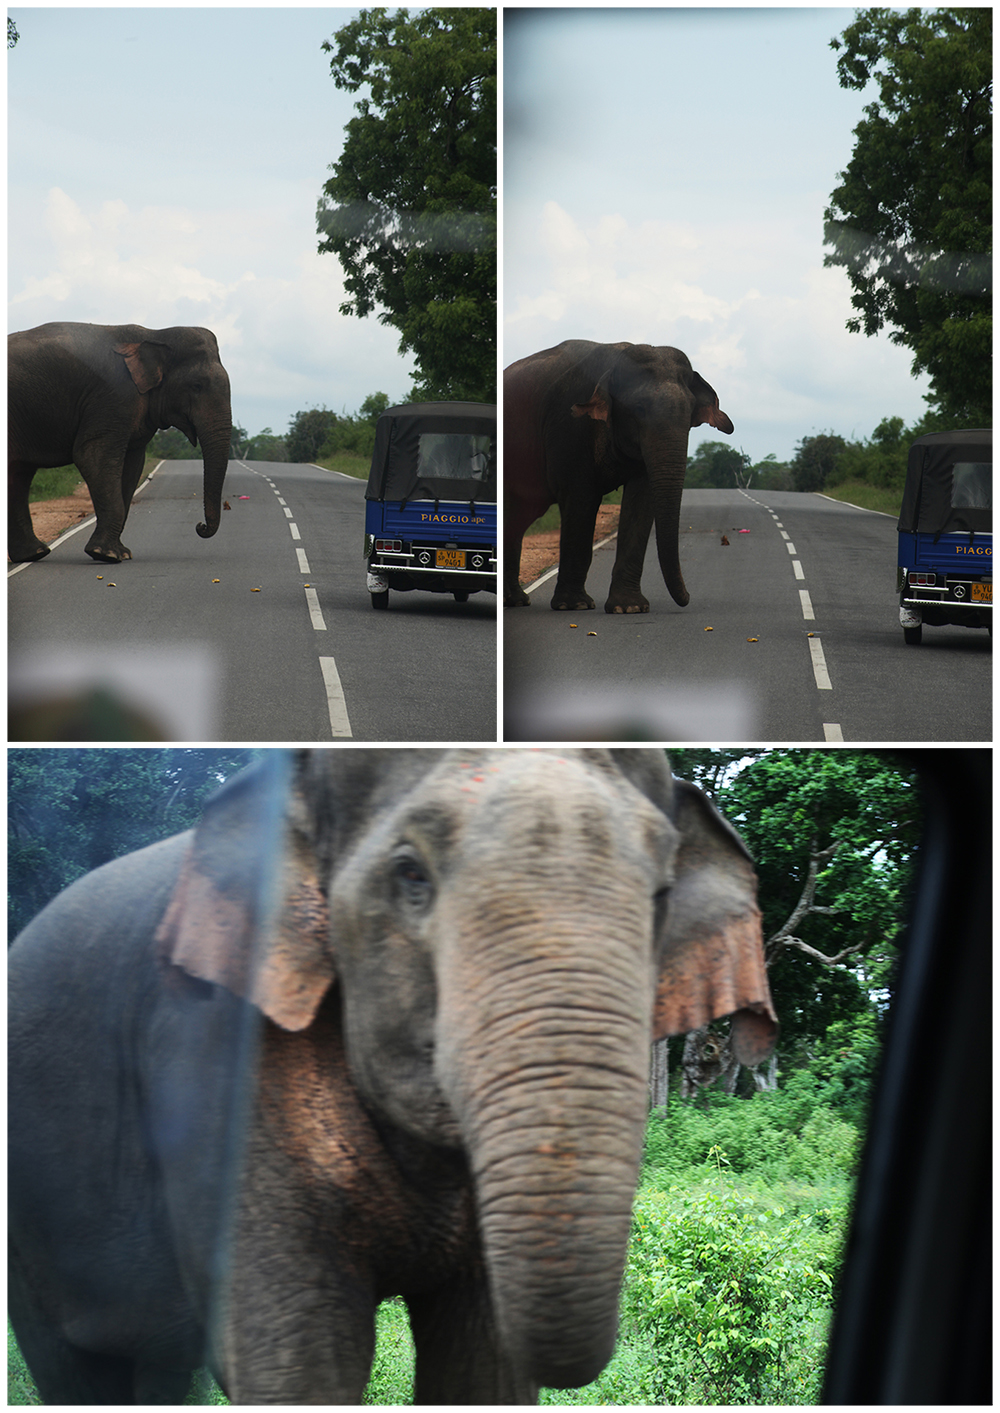 Sri Lankan elephant road